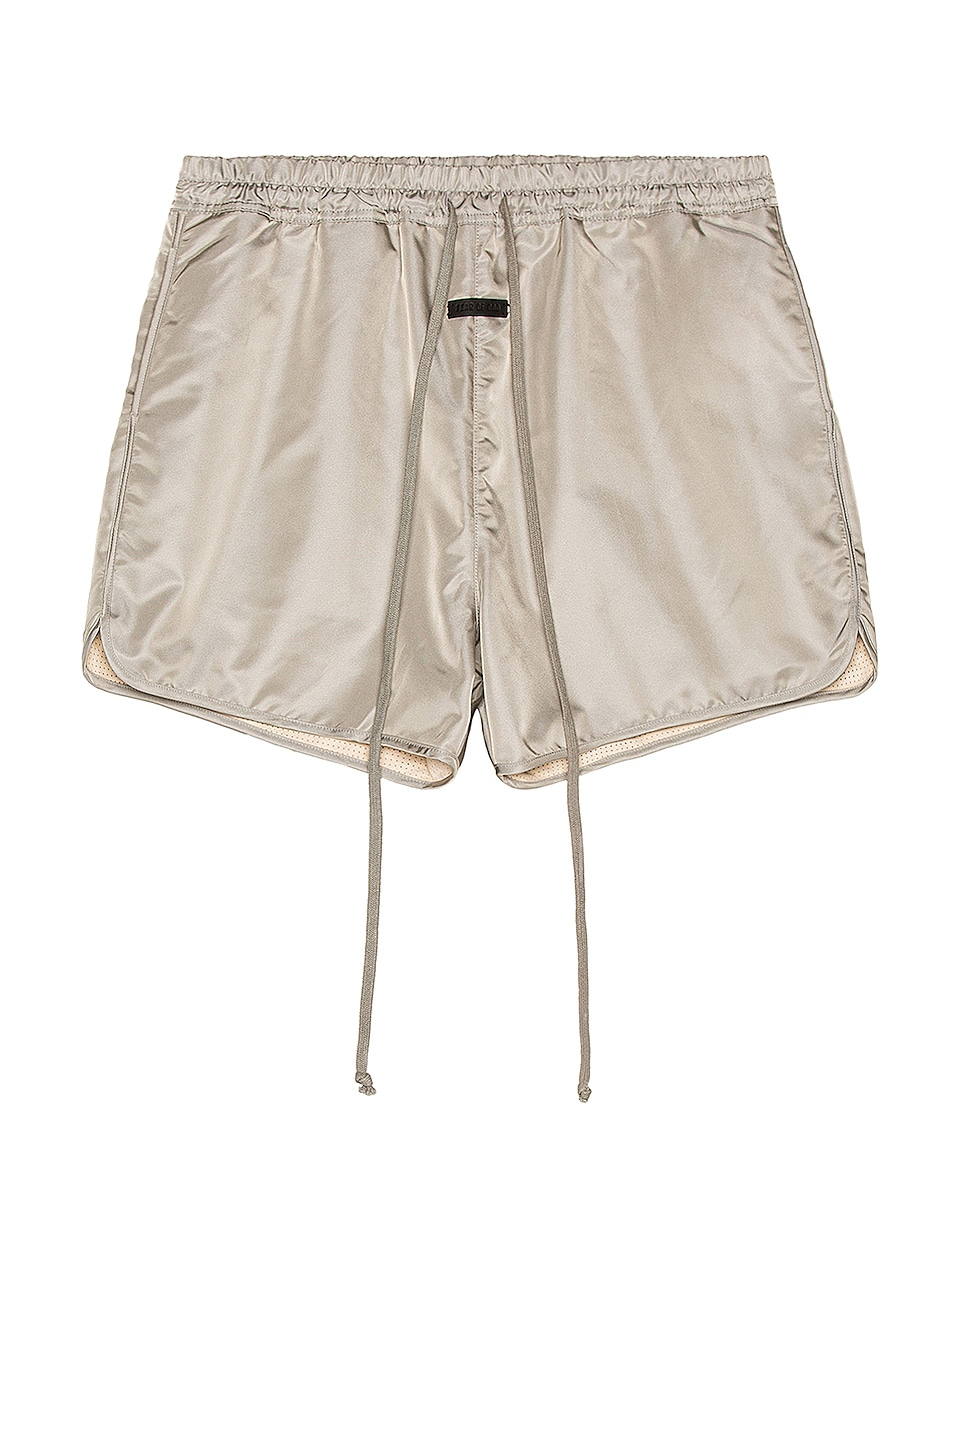 Image 1 of Fear of God Track Short in Grey Iridescent